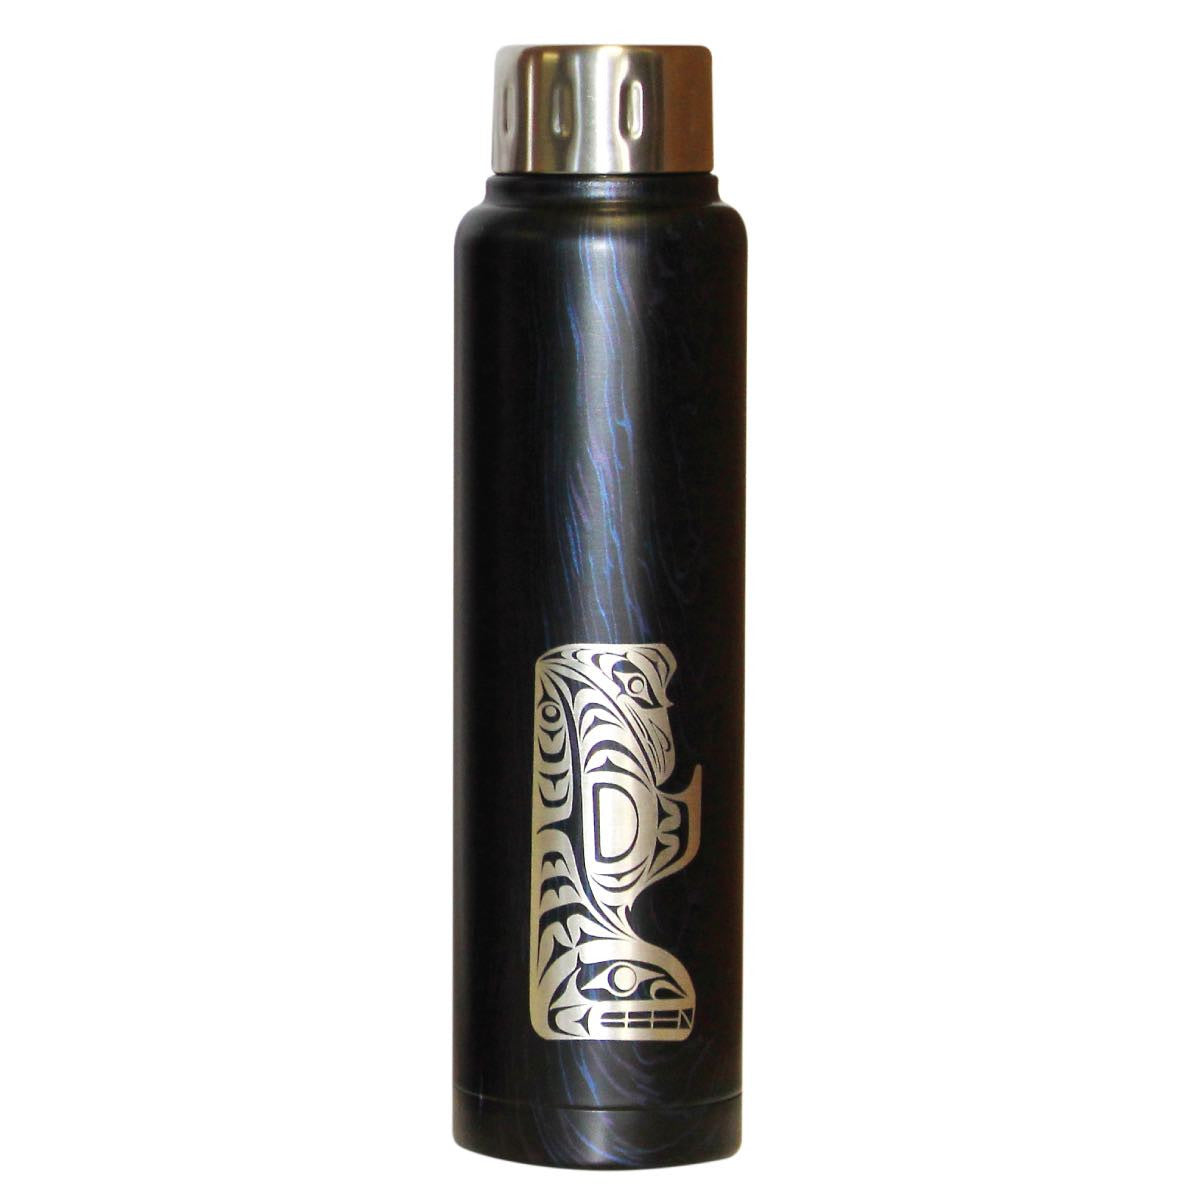 Totem Insulated Stainless Steel Bottle by Maynard Johnny Jr., Coast Salish/Kwakwaka'wakw